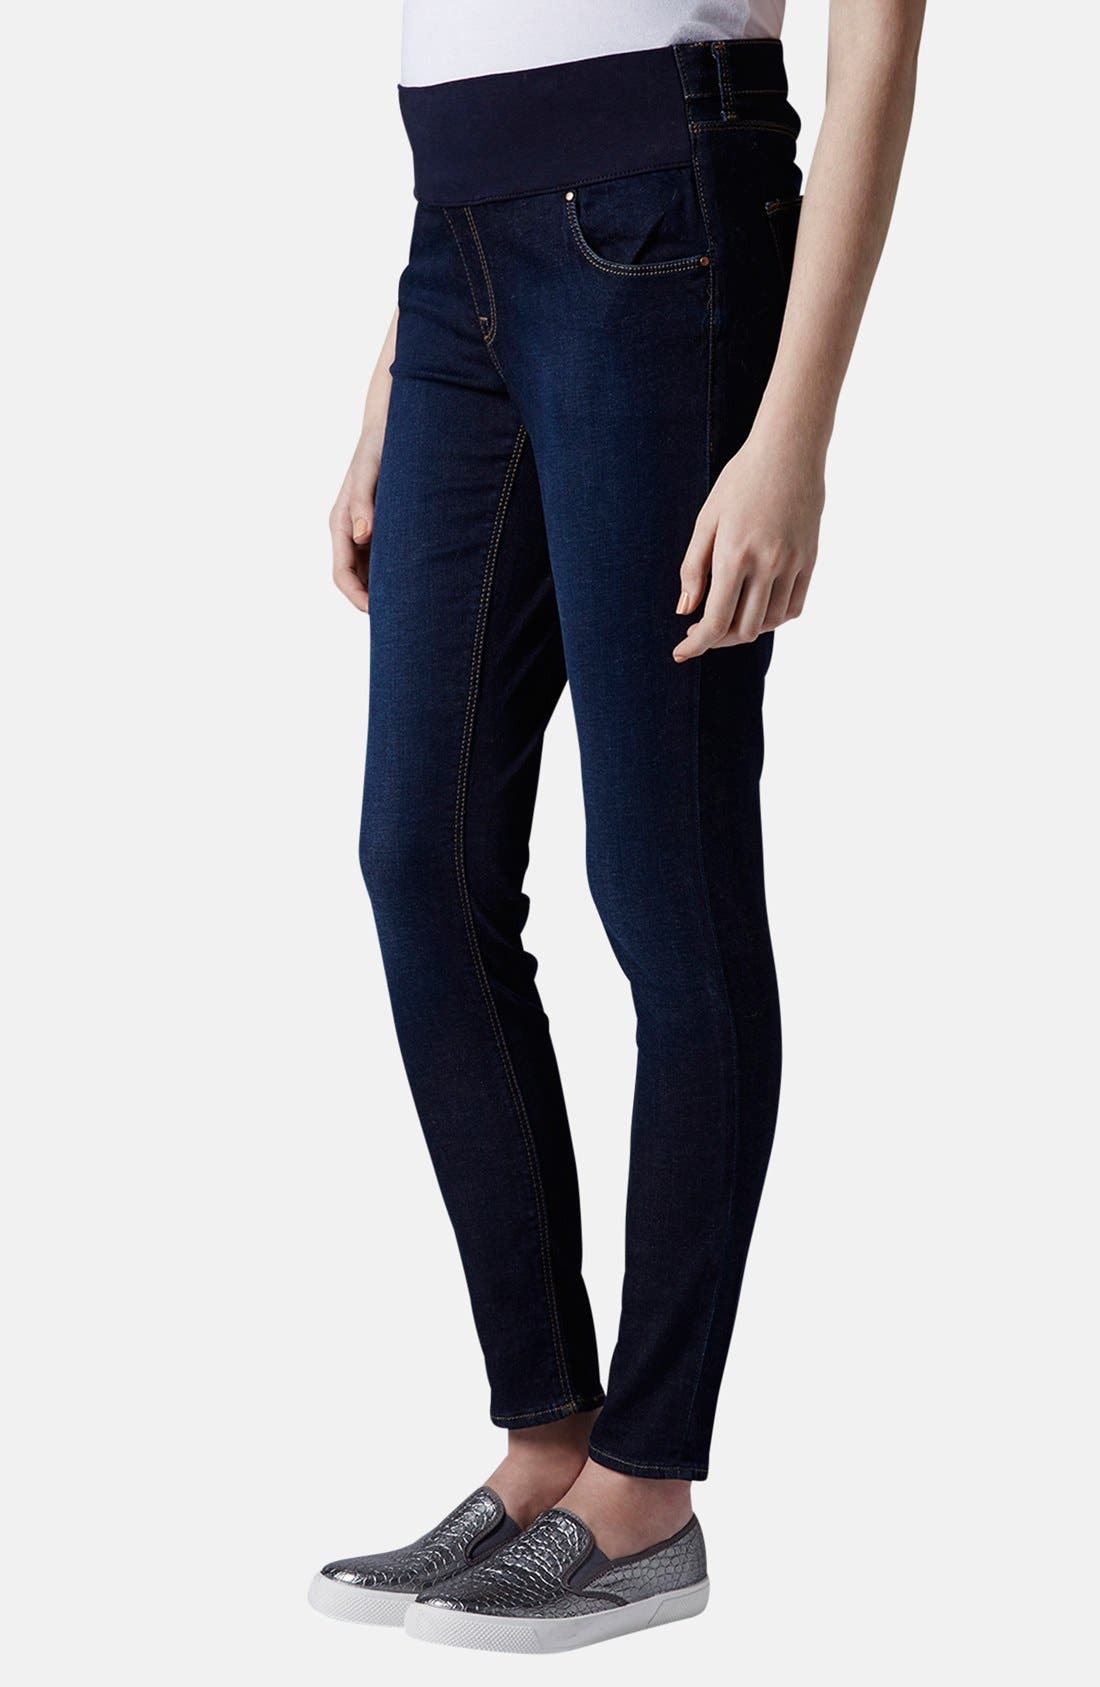 Topshop 'Leigh' Maternity Skinny Jeans